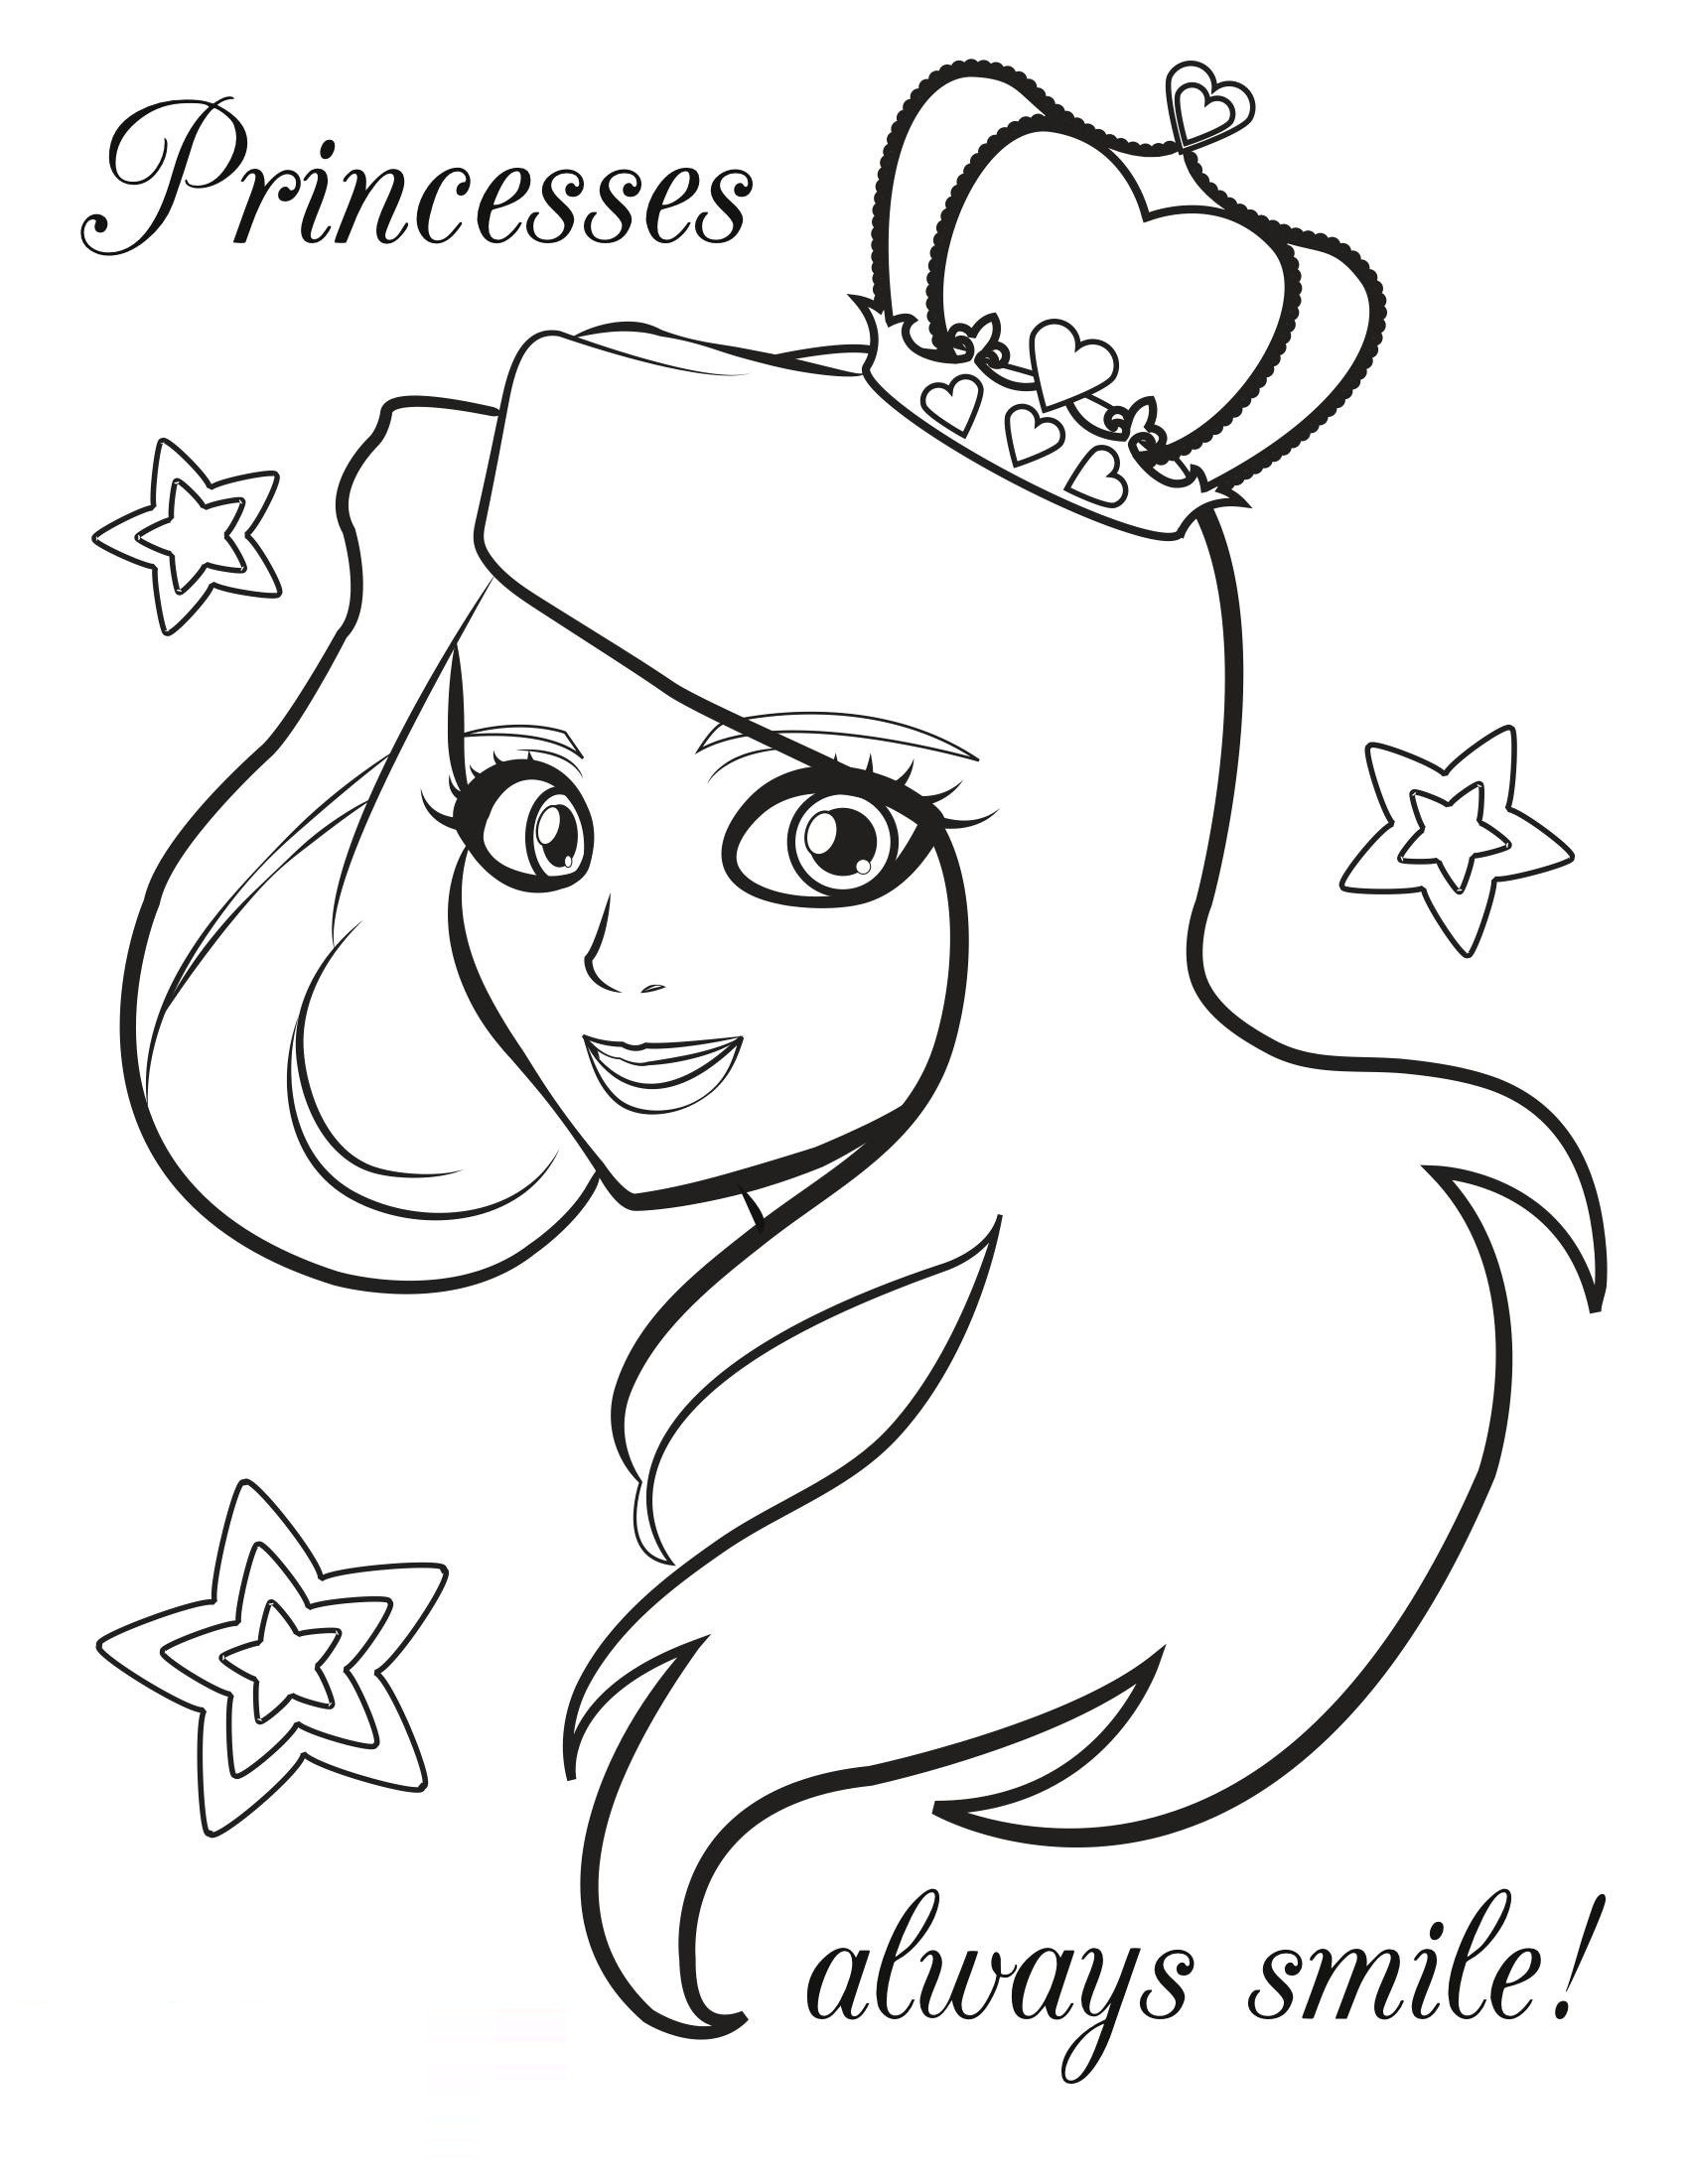 Coloring Sheets For Girls Free Printable  2014 free coloring pages of princess to print for girls